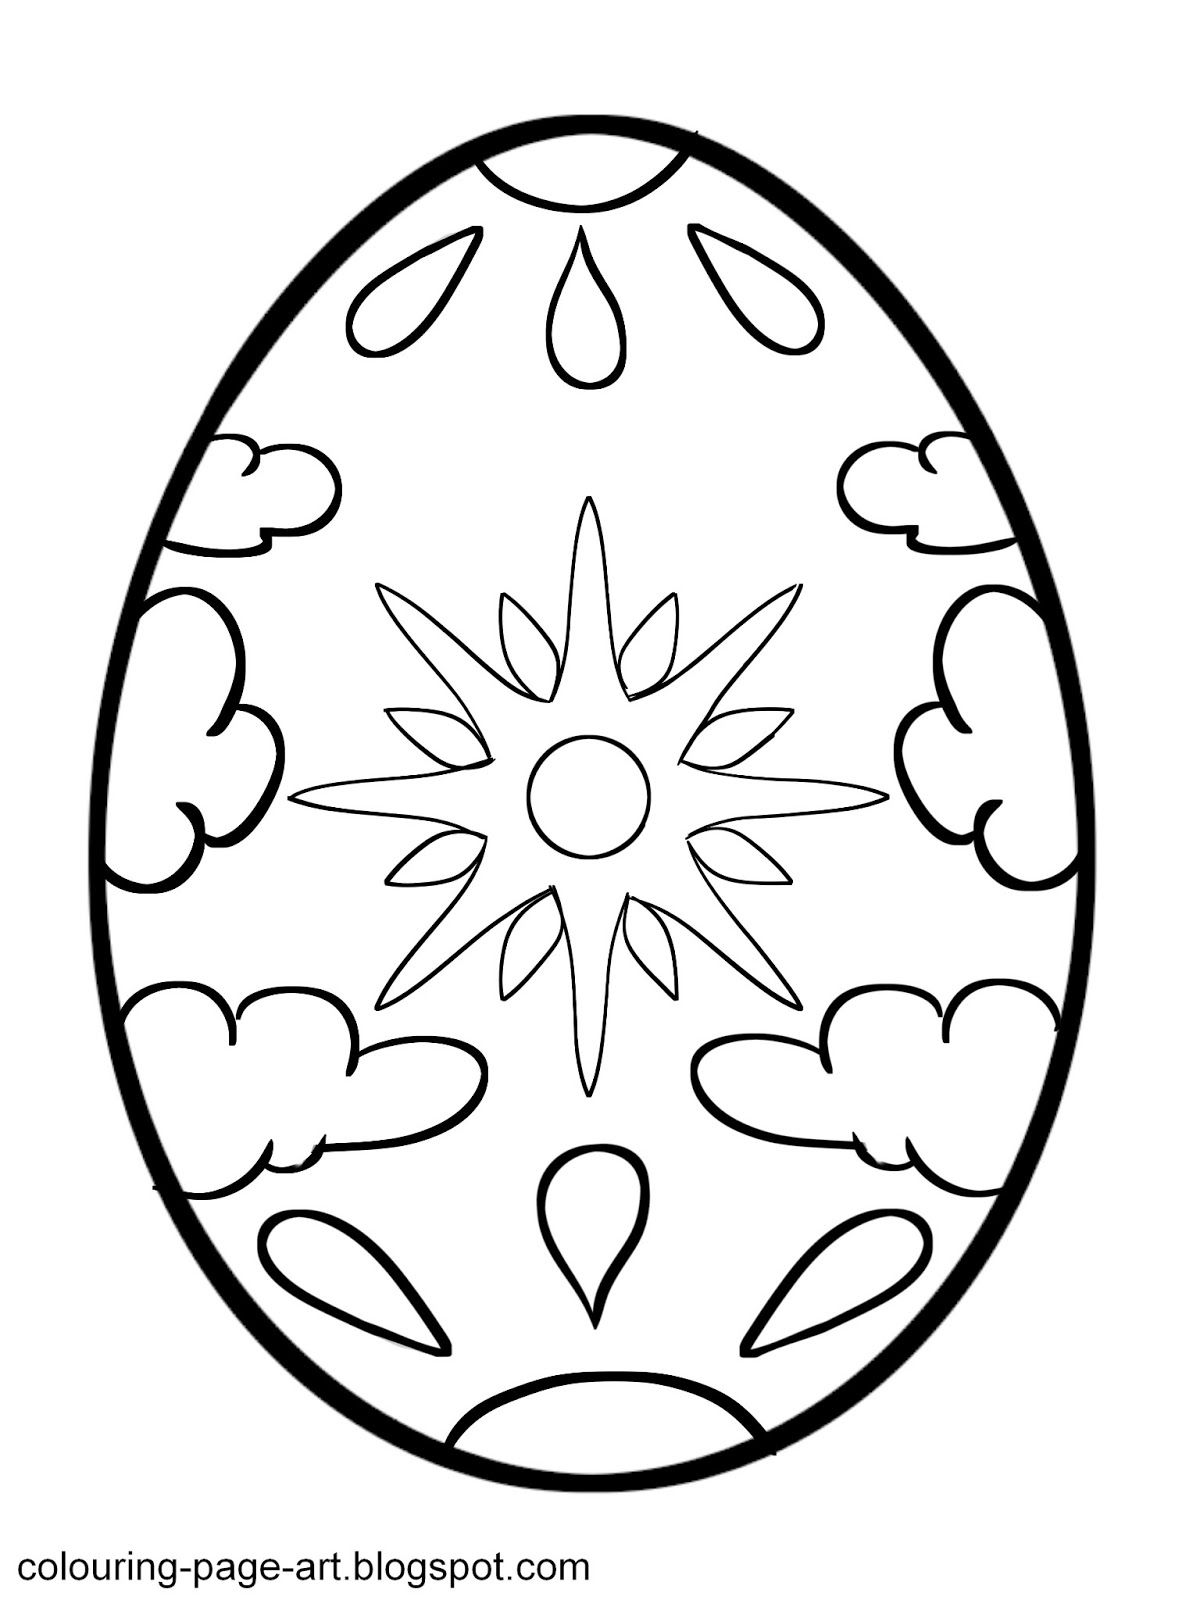 Easter Egg Printable Colouring Pages Printable coloring